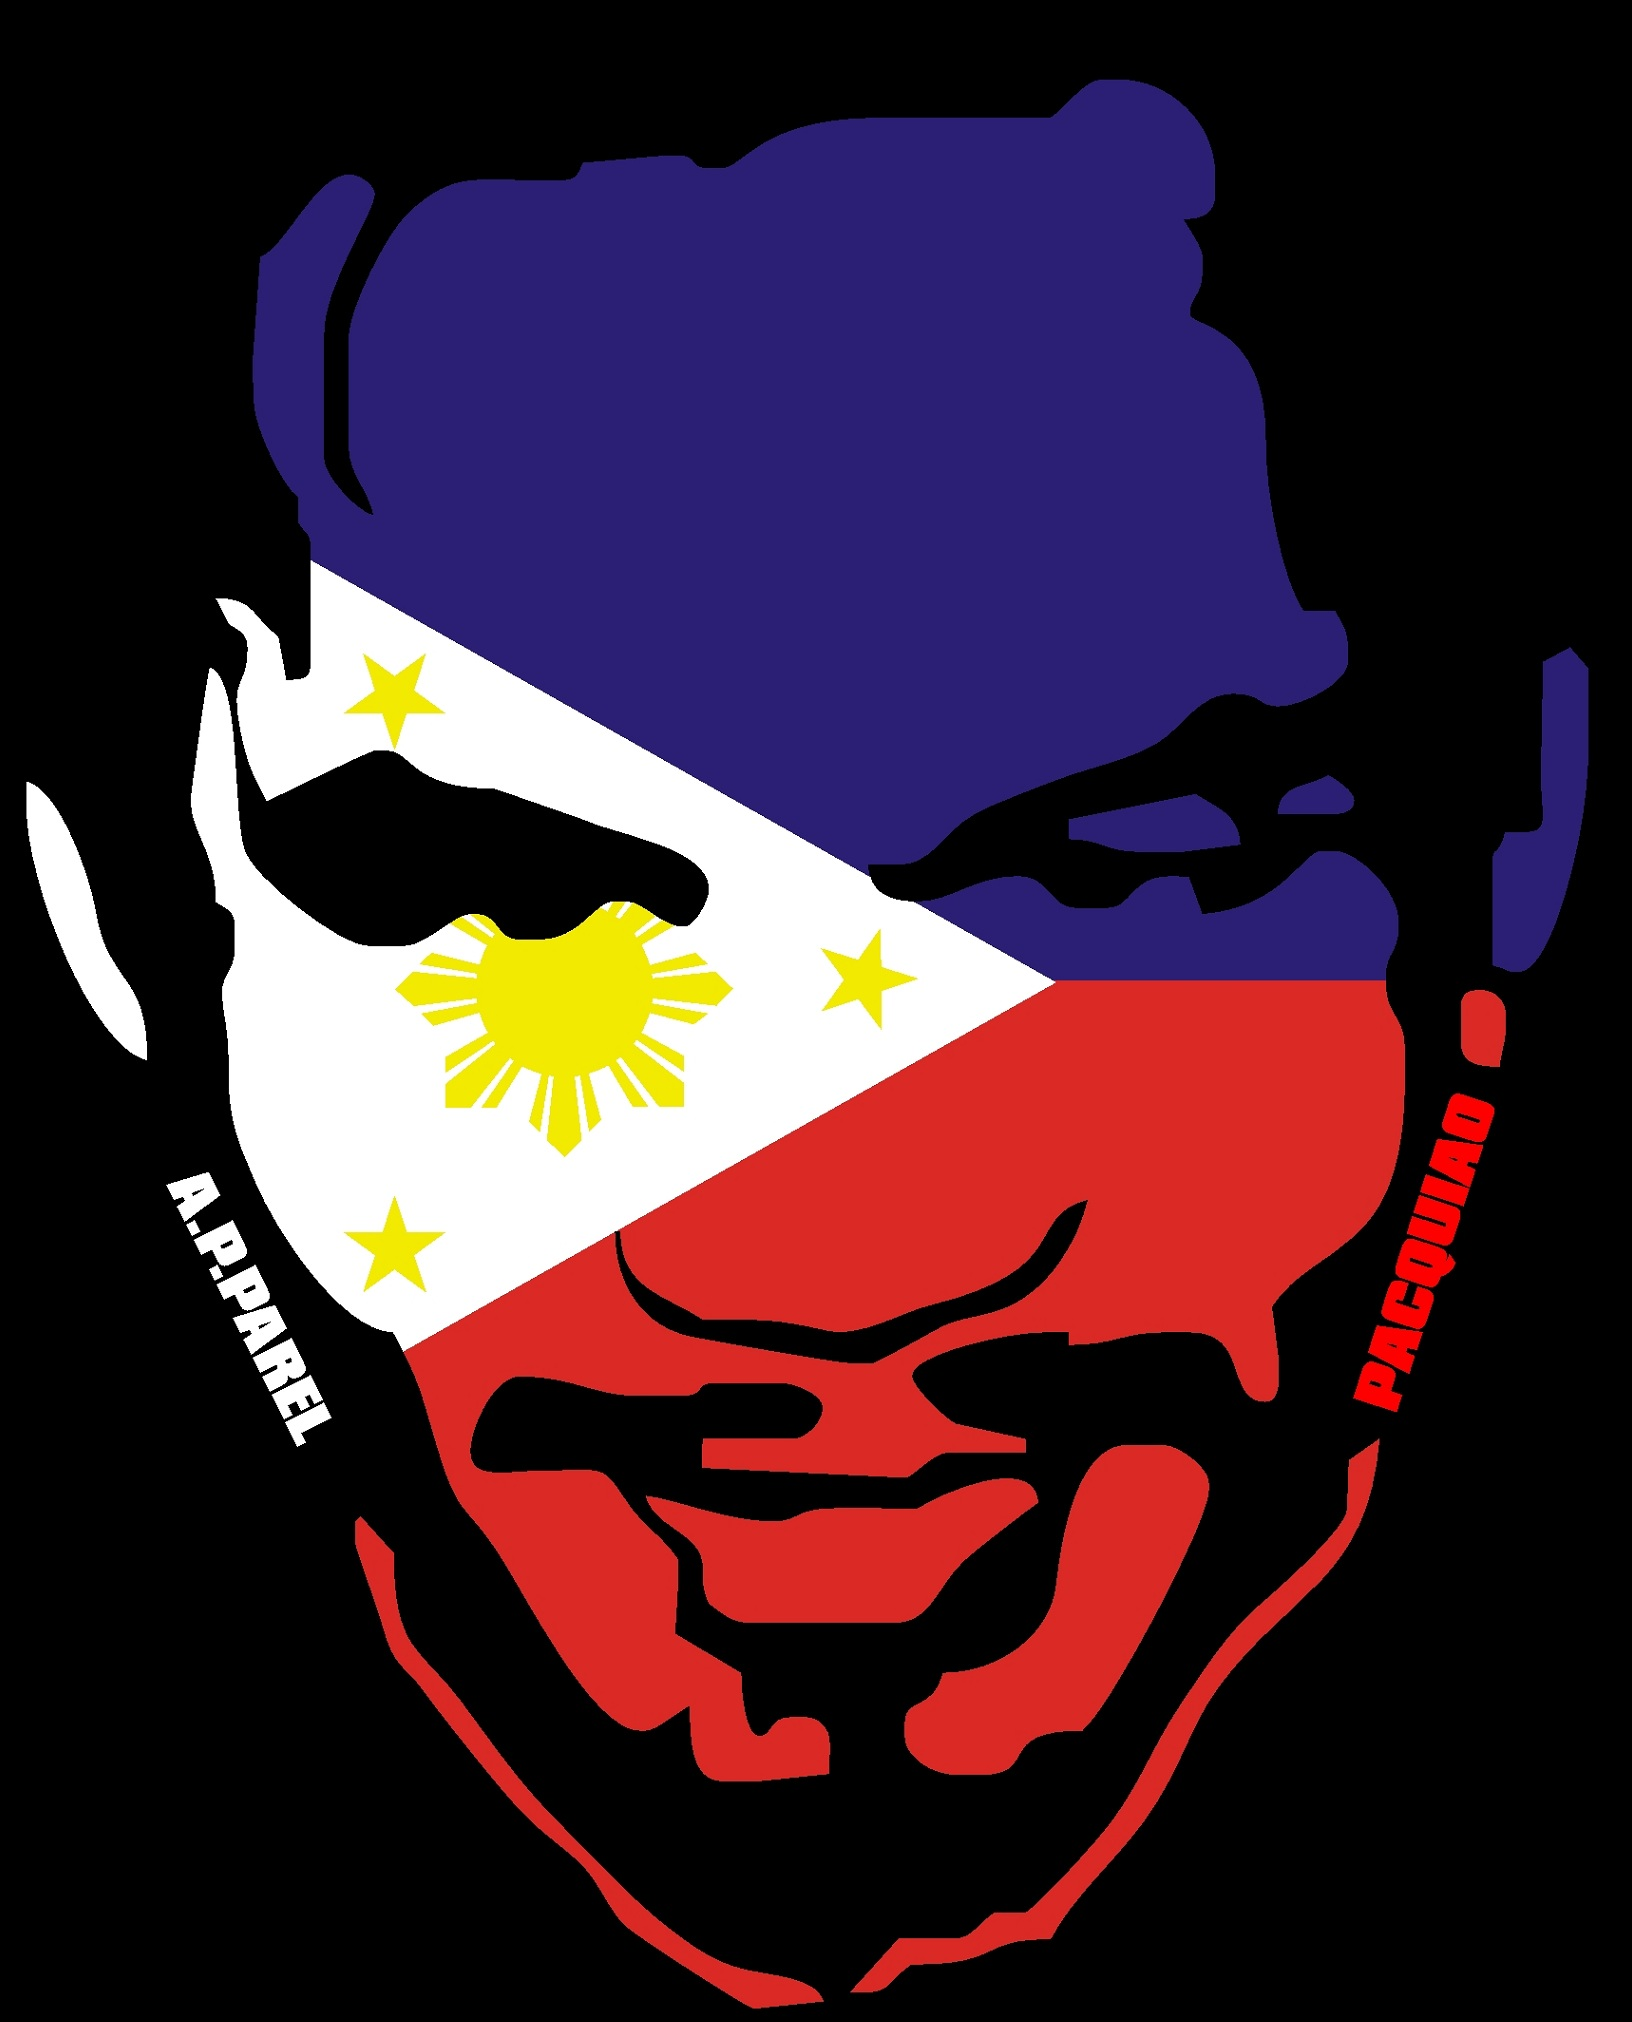 Philipines clipart philippine nationalism Guide to to Steps 5